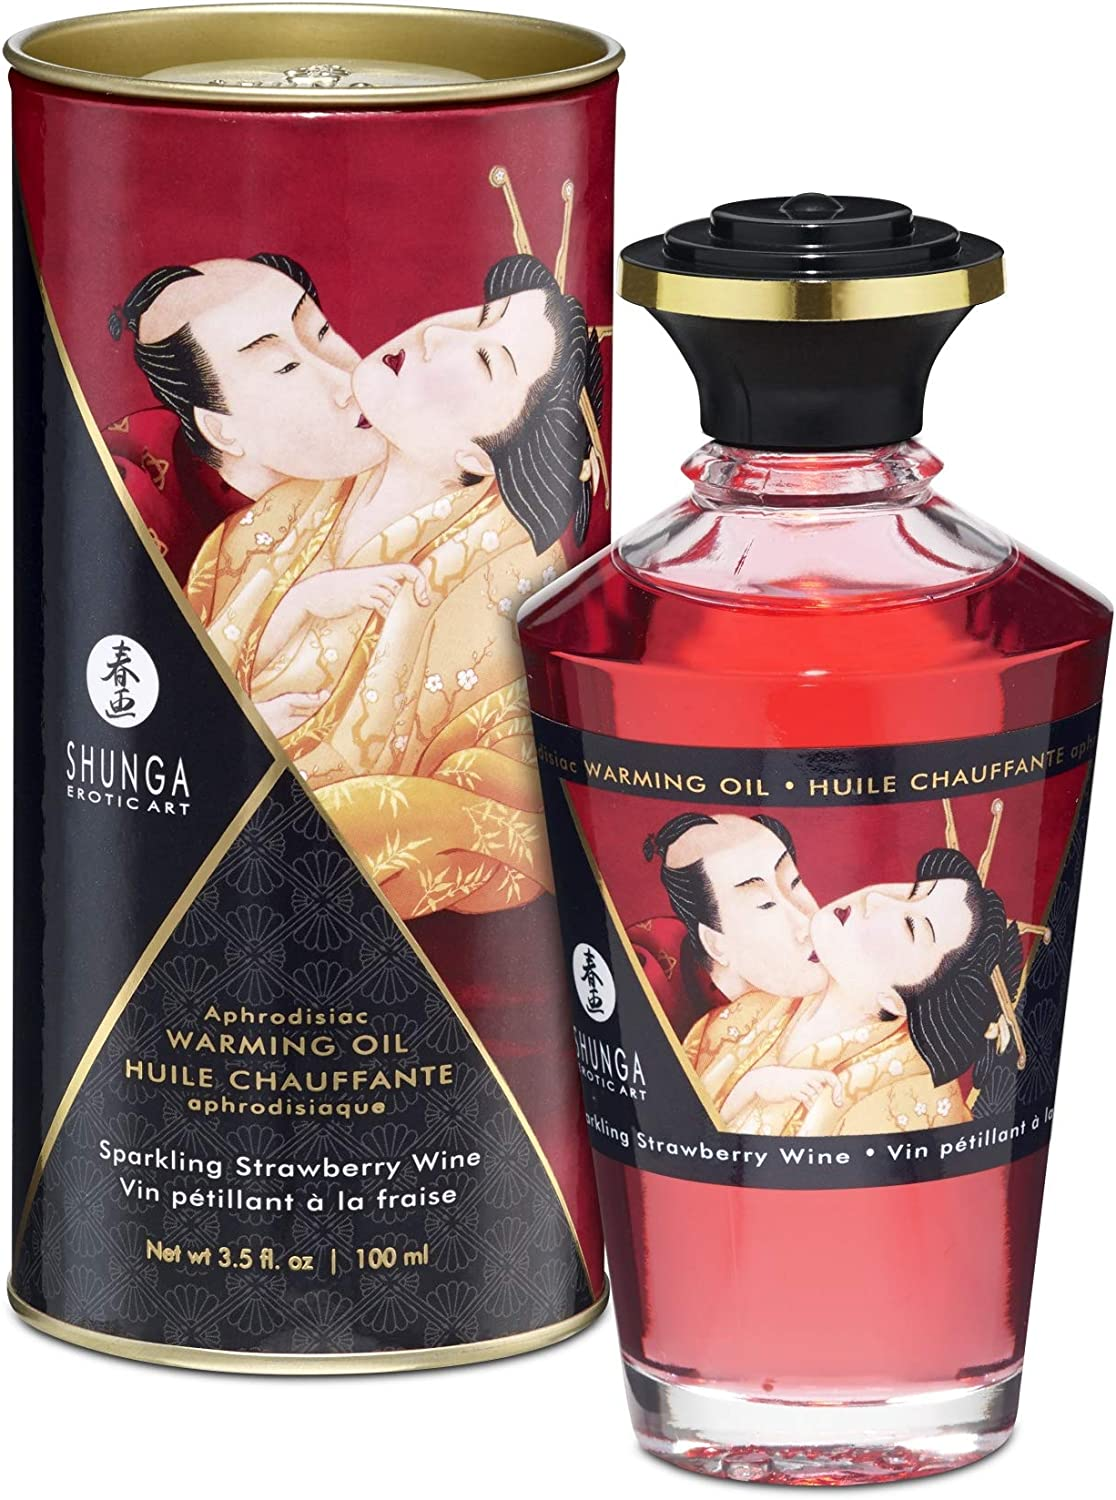 At the price Beauty products Aphrodisiac Warming Oil Strawberries Champagne -